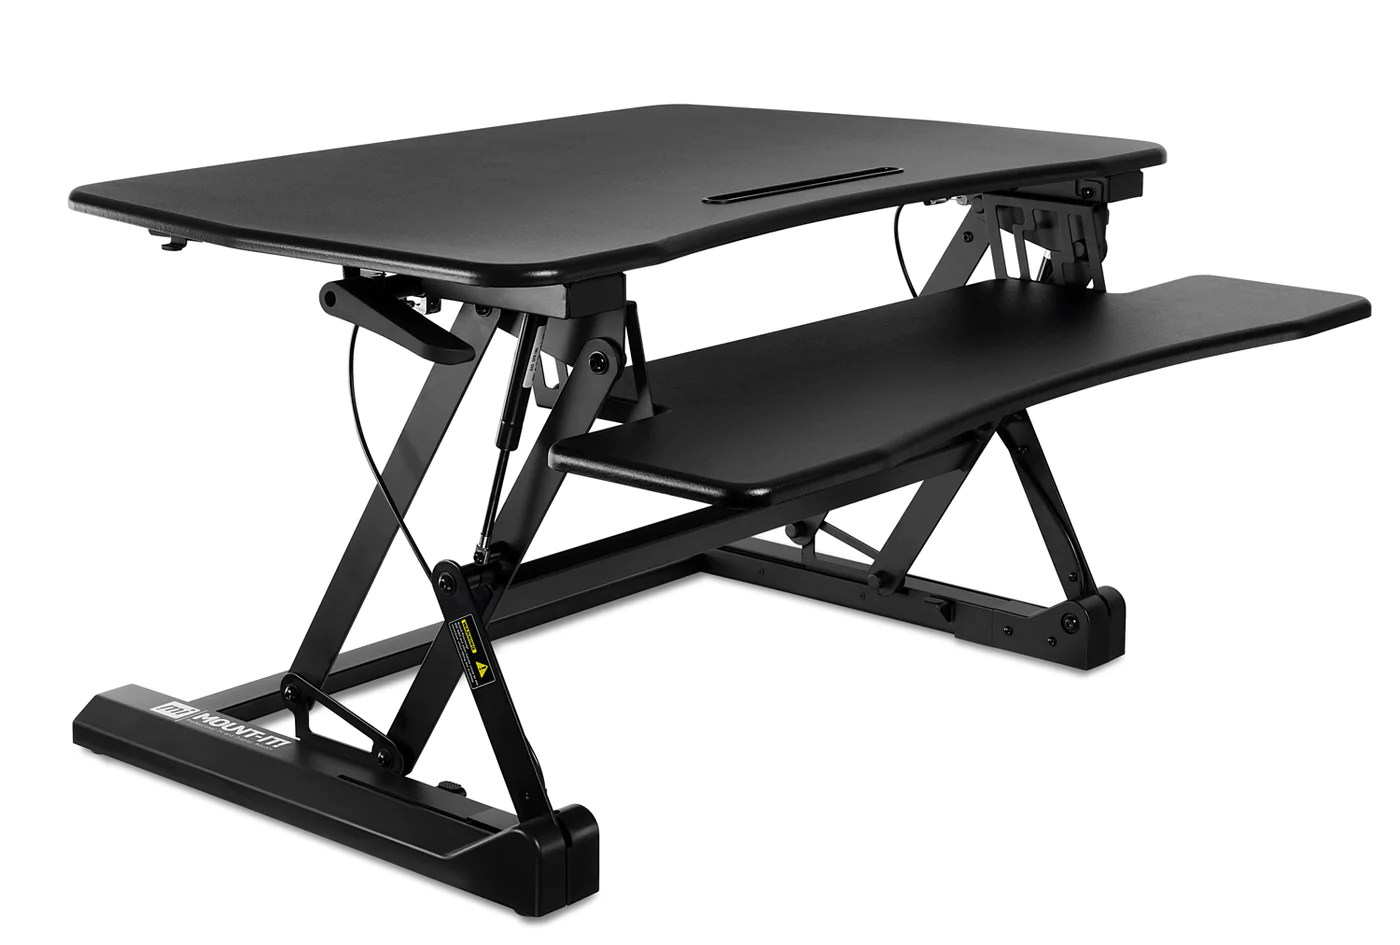 Sit To Stand Desk Mount It Standing Desk Sit Stand Desk Converter Height Adjustable Large Surface Area Mi 7955